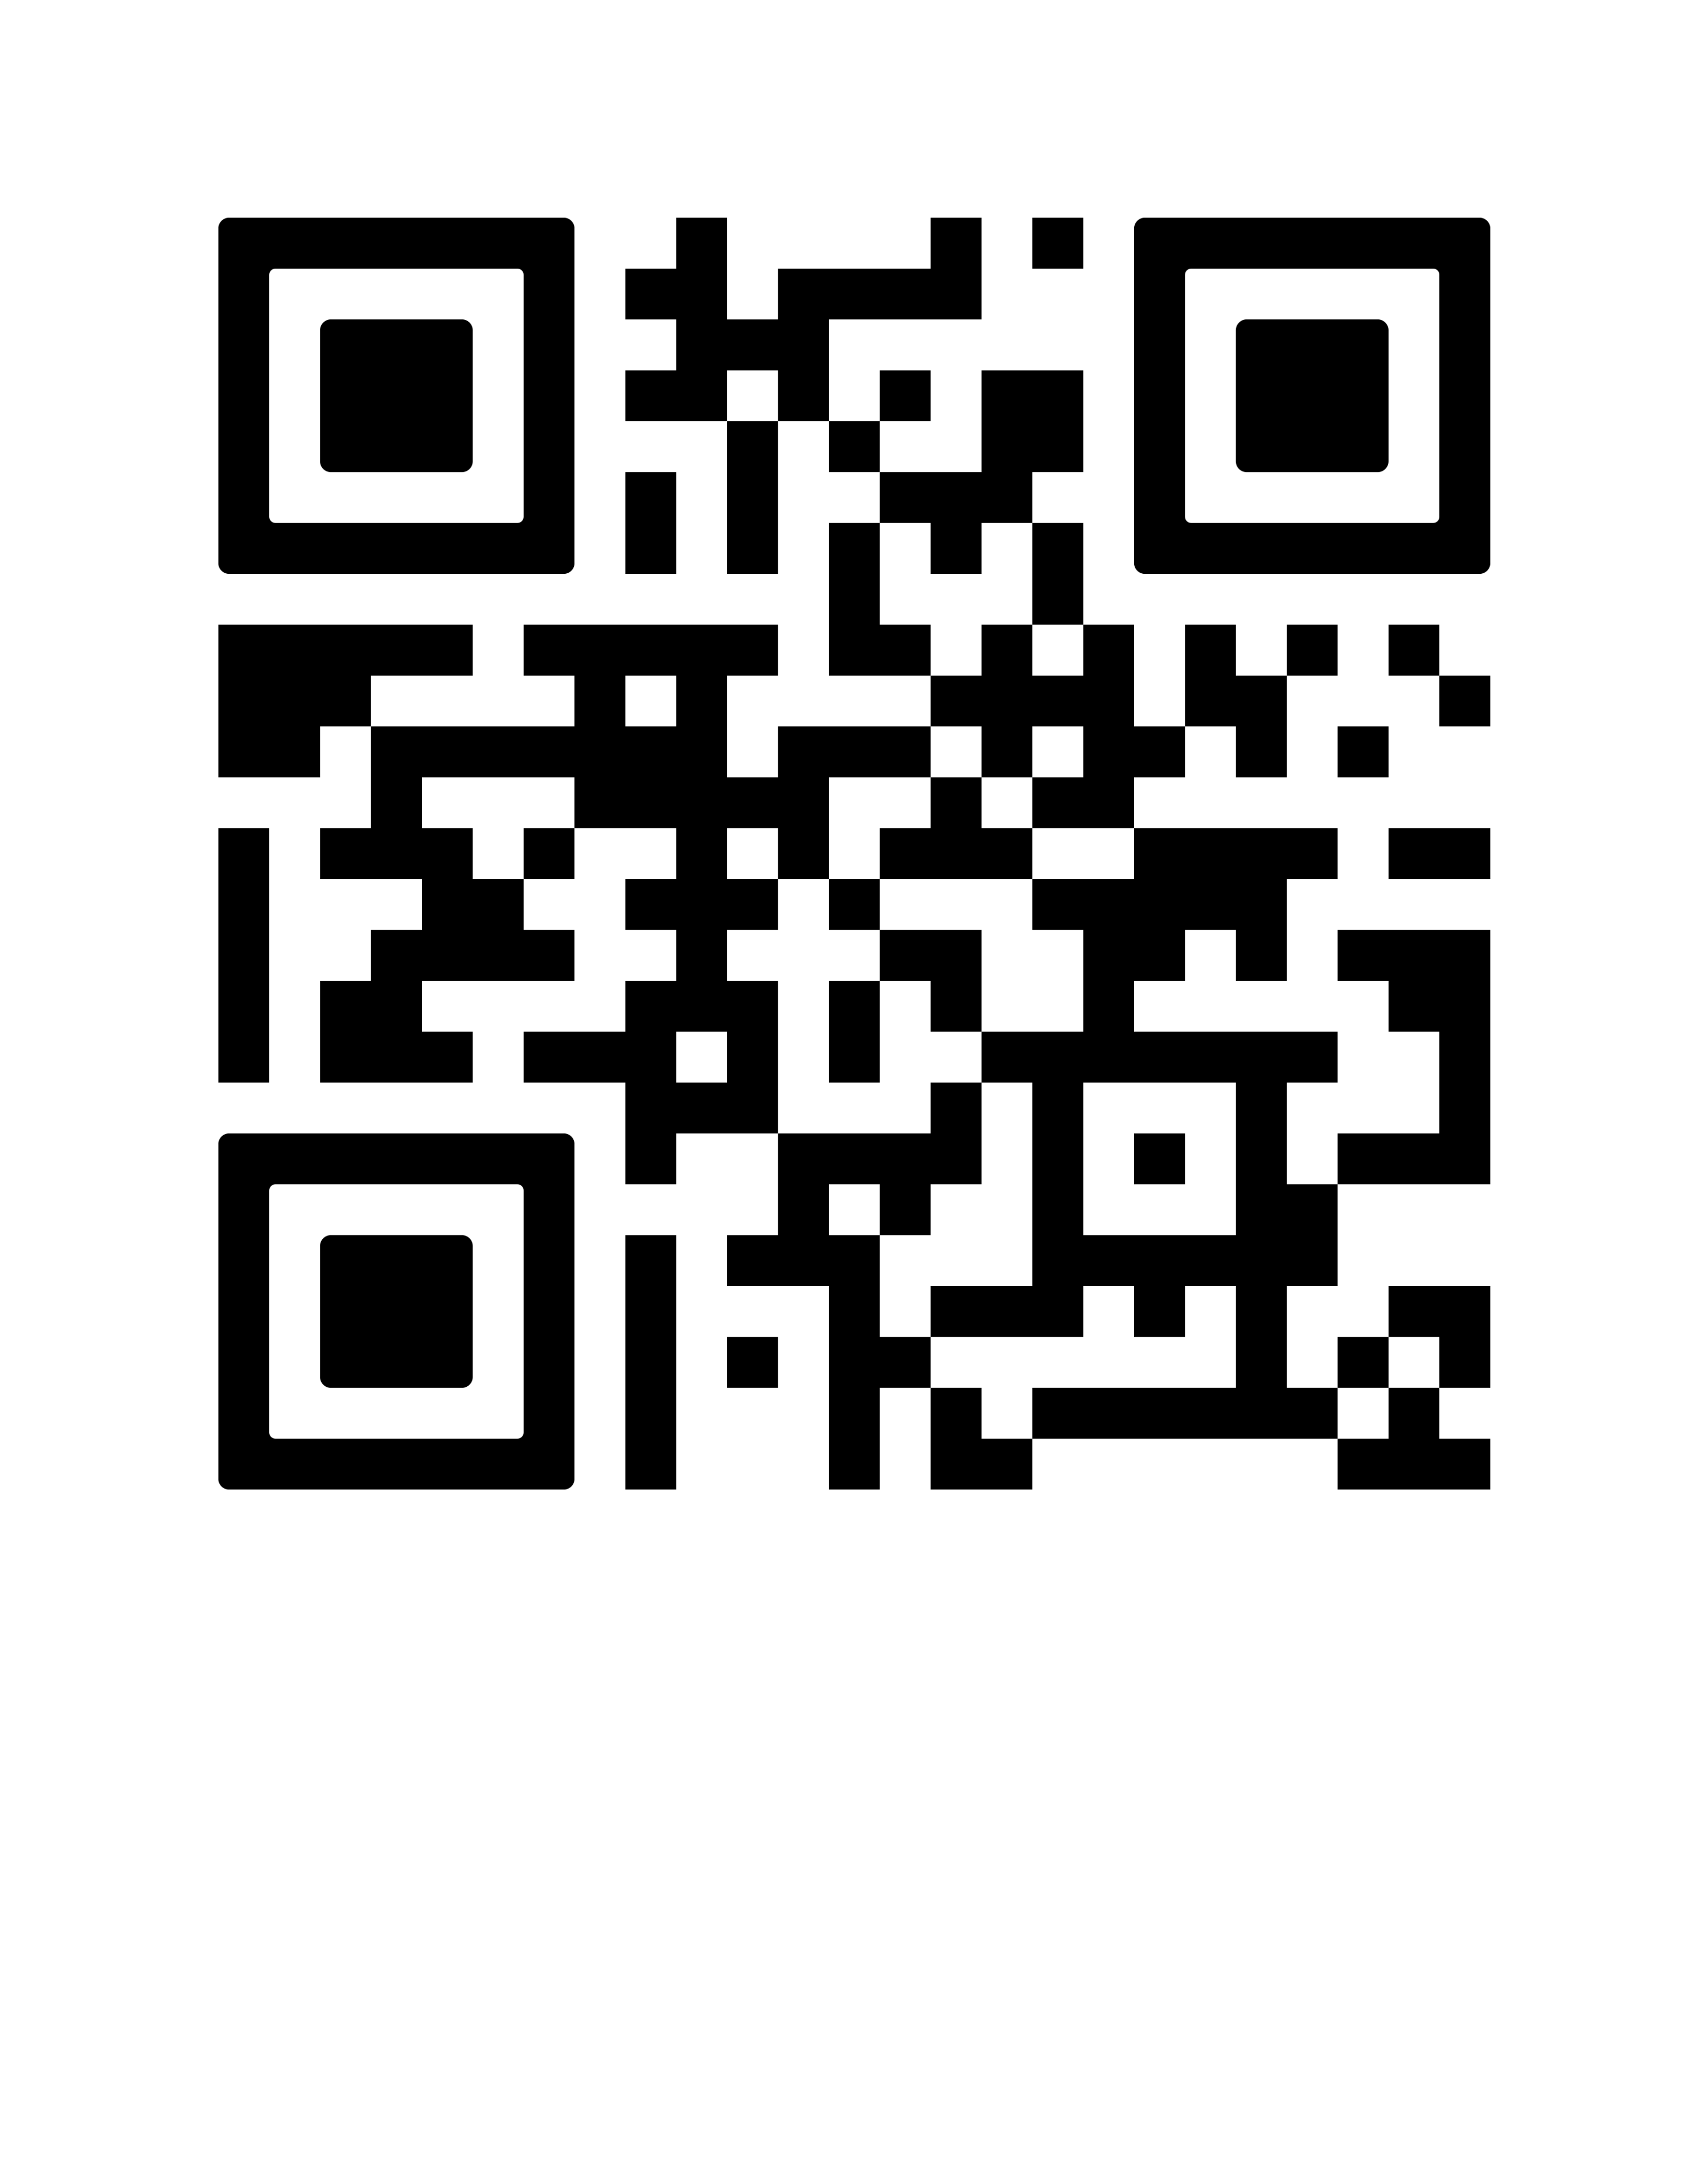 Download Aegle QRCode